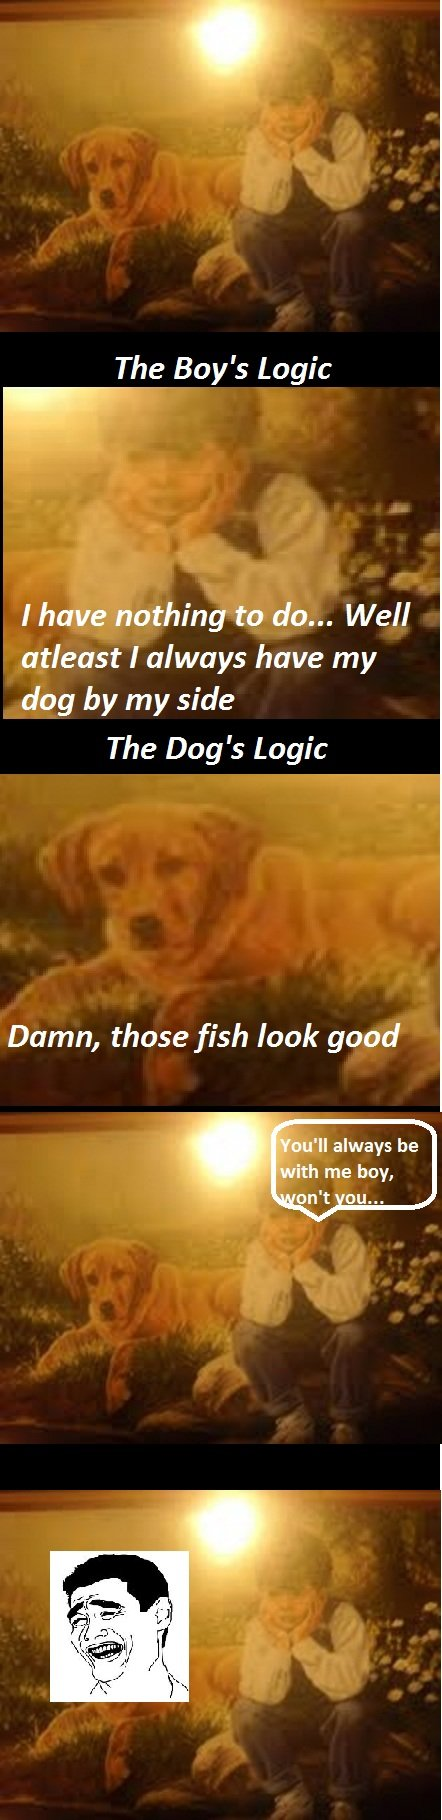 The boy, the dog and the pond. logic. The Boy' s Logic l have nothing to do... Well atleast I always have my dog by my side The Dog' s Logic Damn, those fish lo